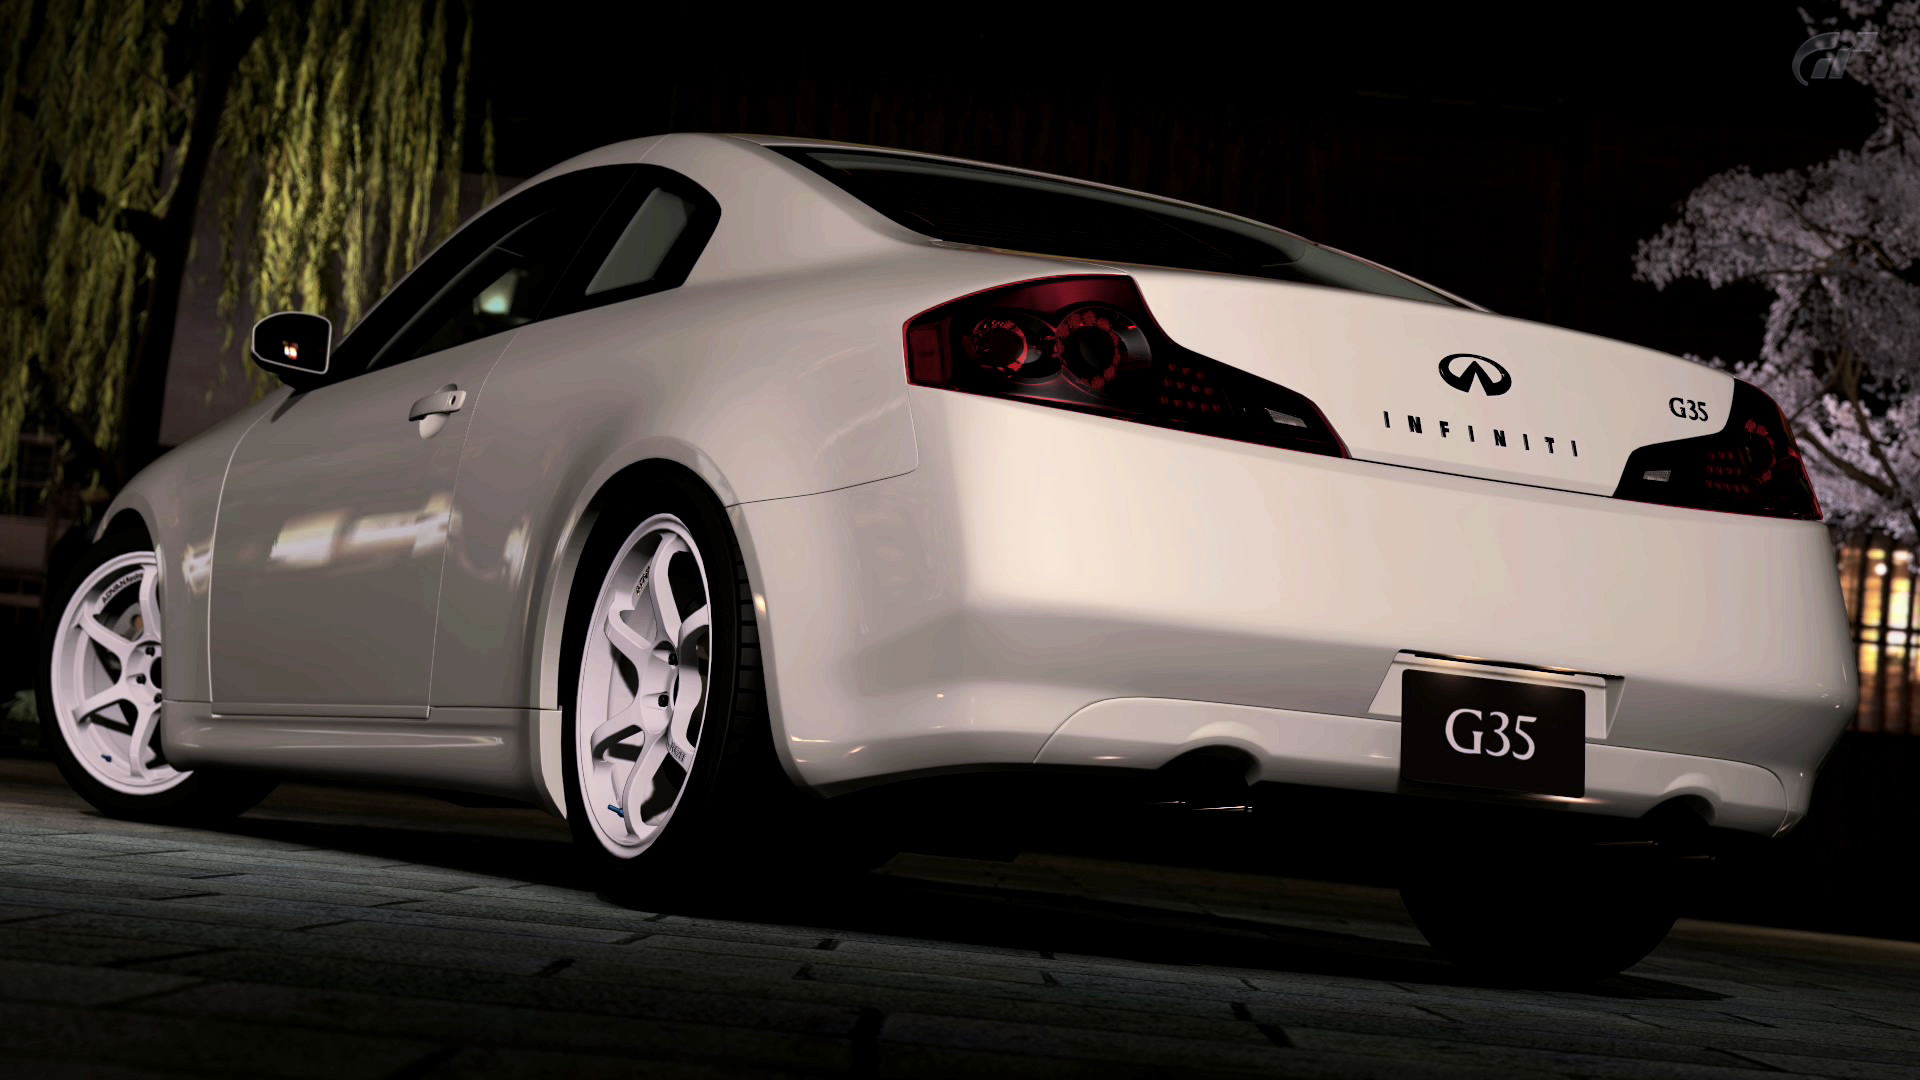 98 reviews infiniti g35x sport on margojoyo 2006 infiniti g35 sport coupe gran turismo 5 by vertualissimo on vanachro Gallery